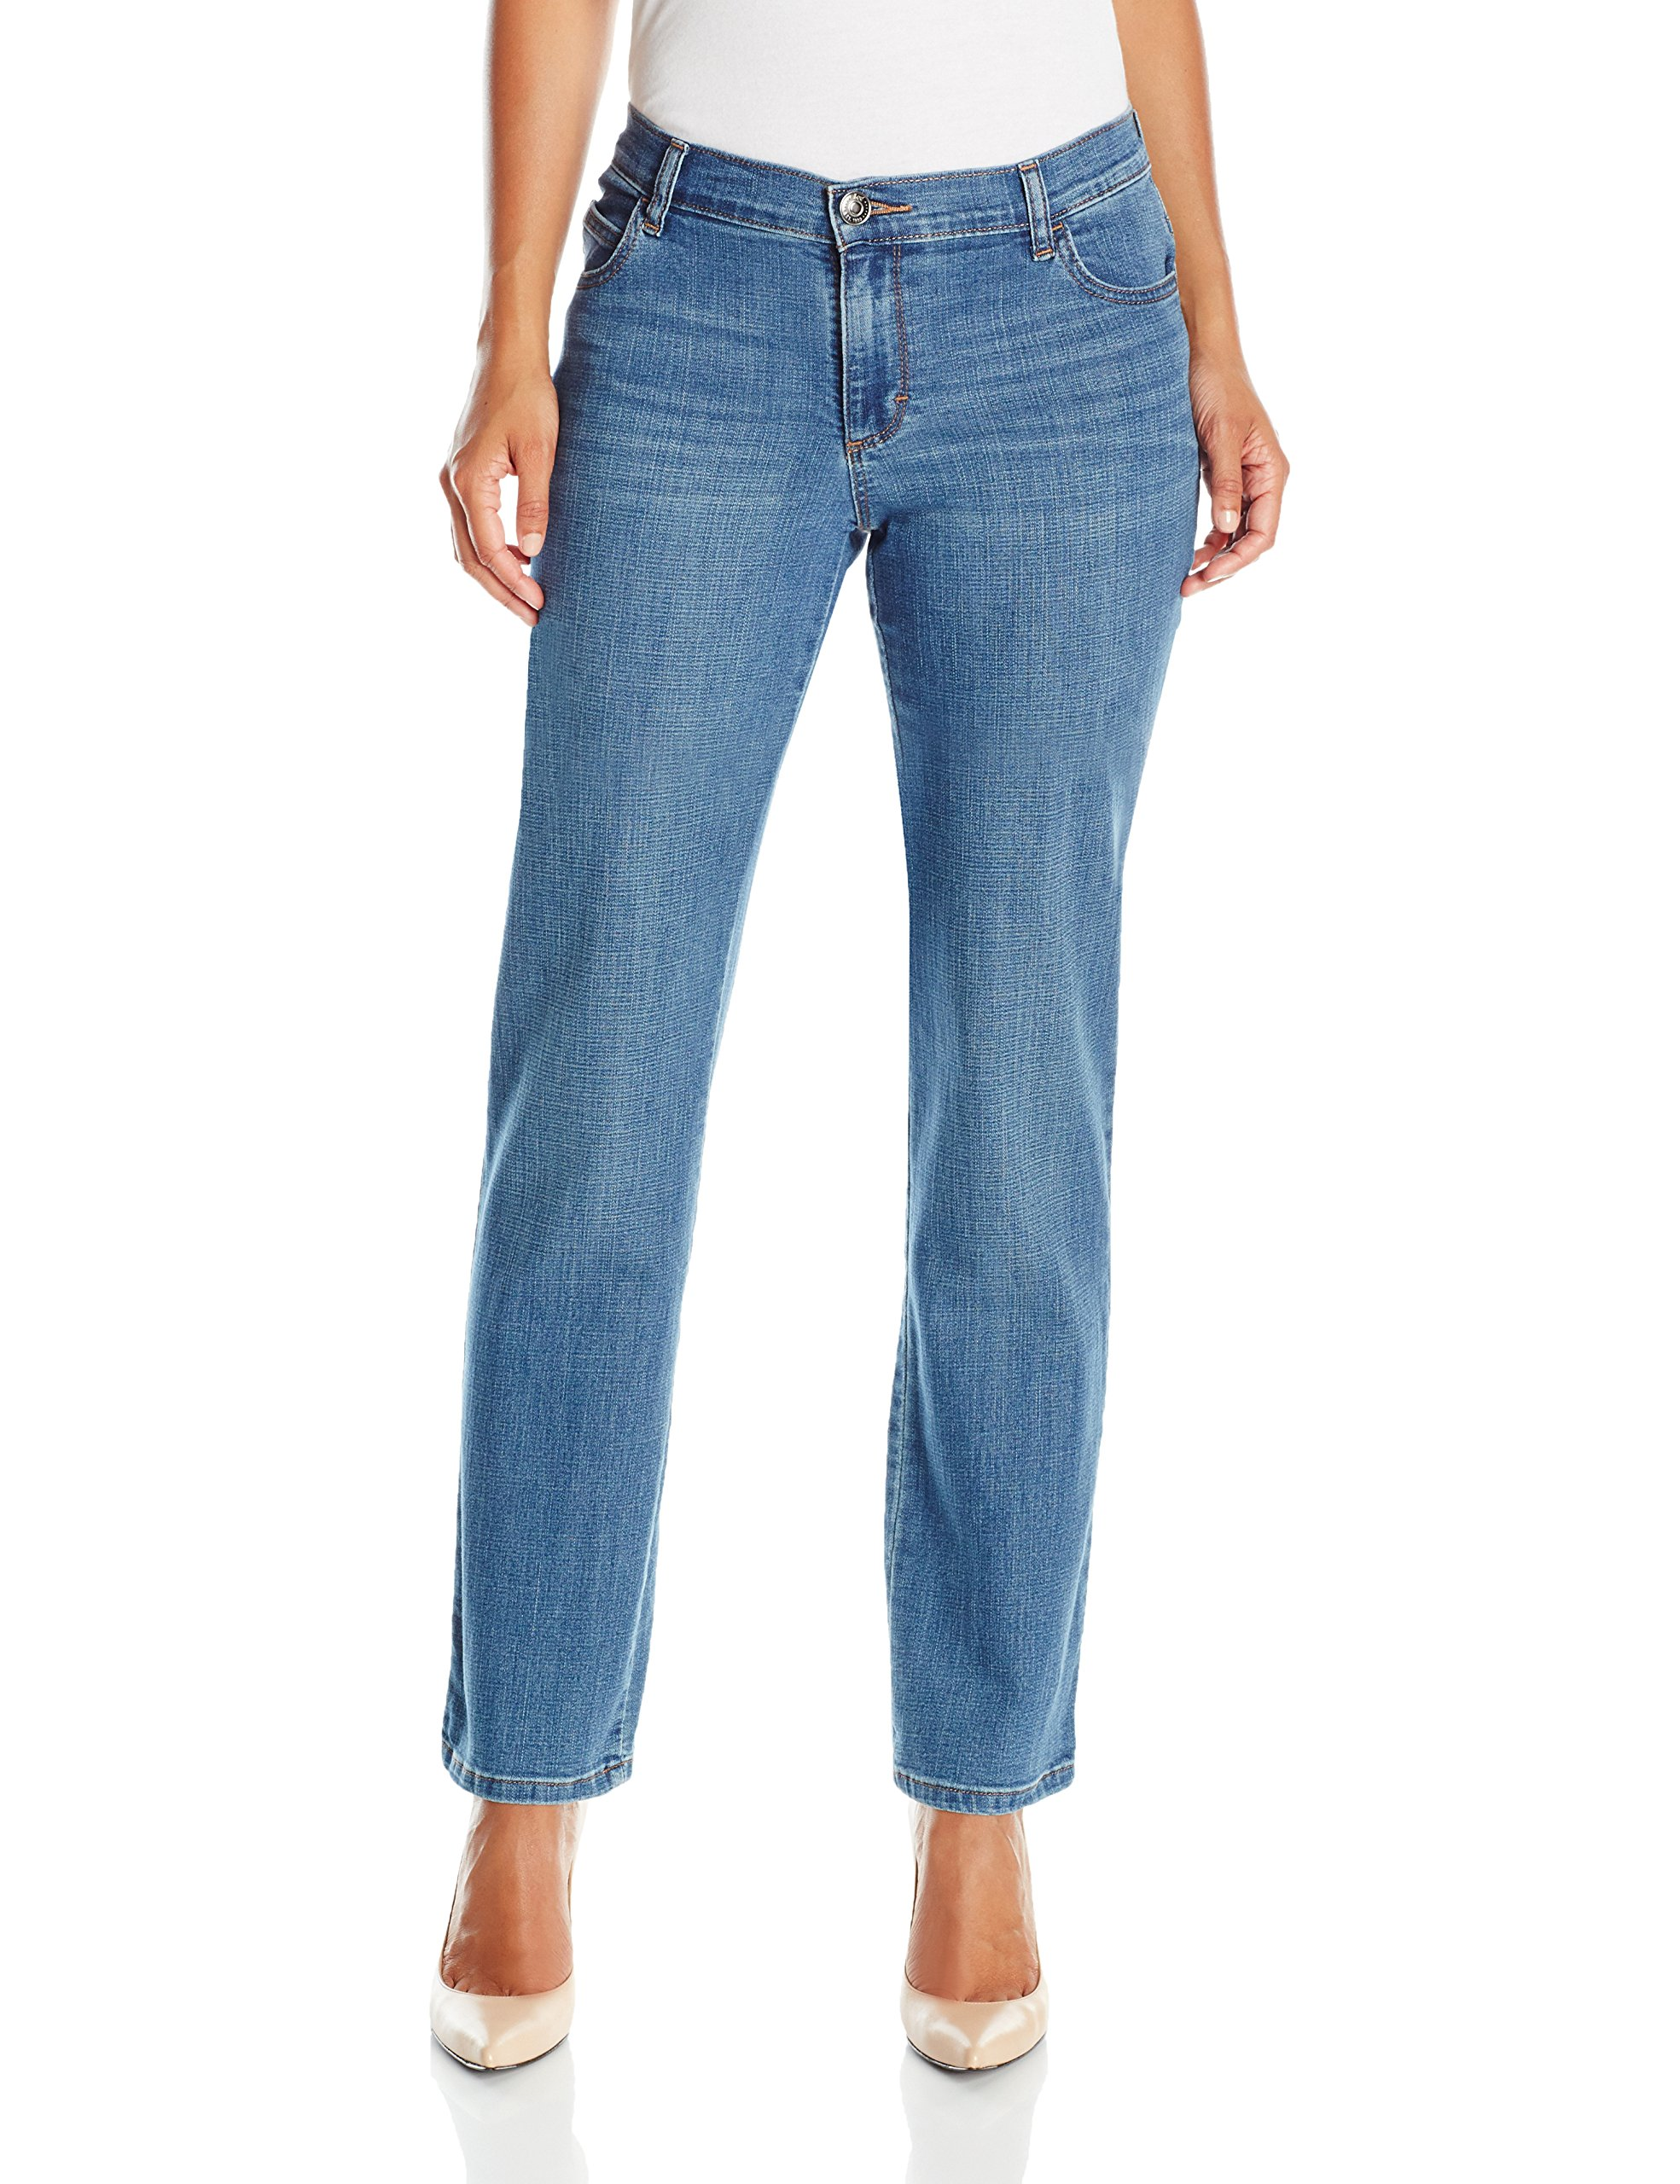 Lee Women's Relaxed Fit Straight Leg Jean, Meridian, 16 Petite by LEE (Image #1)